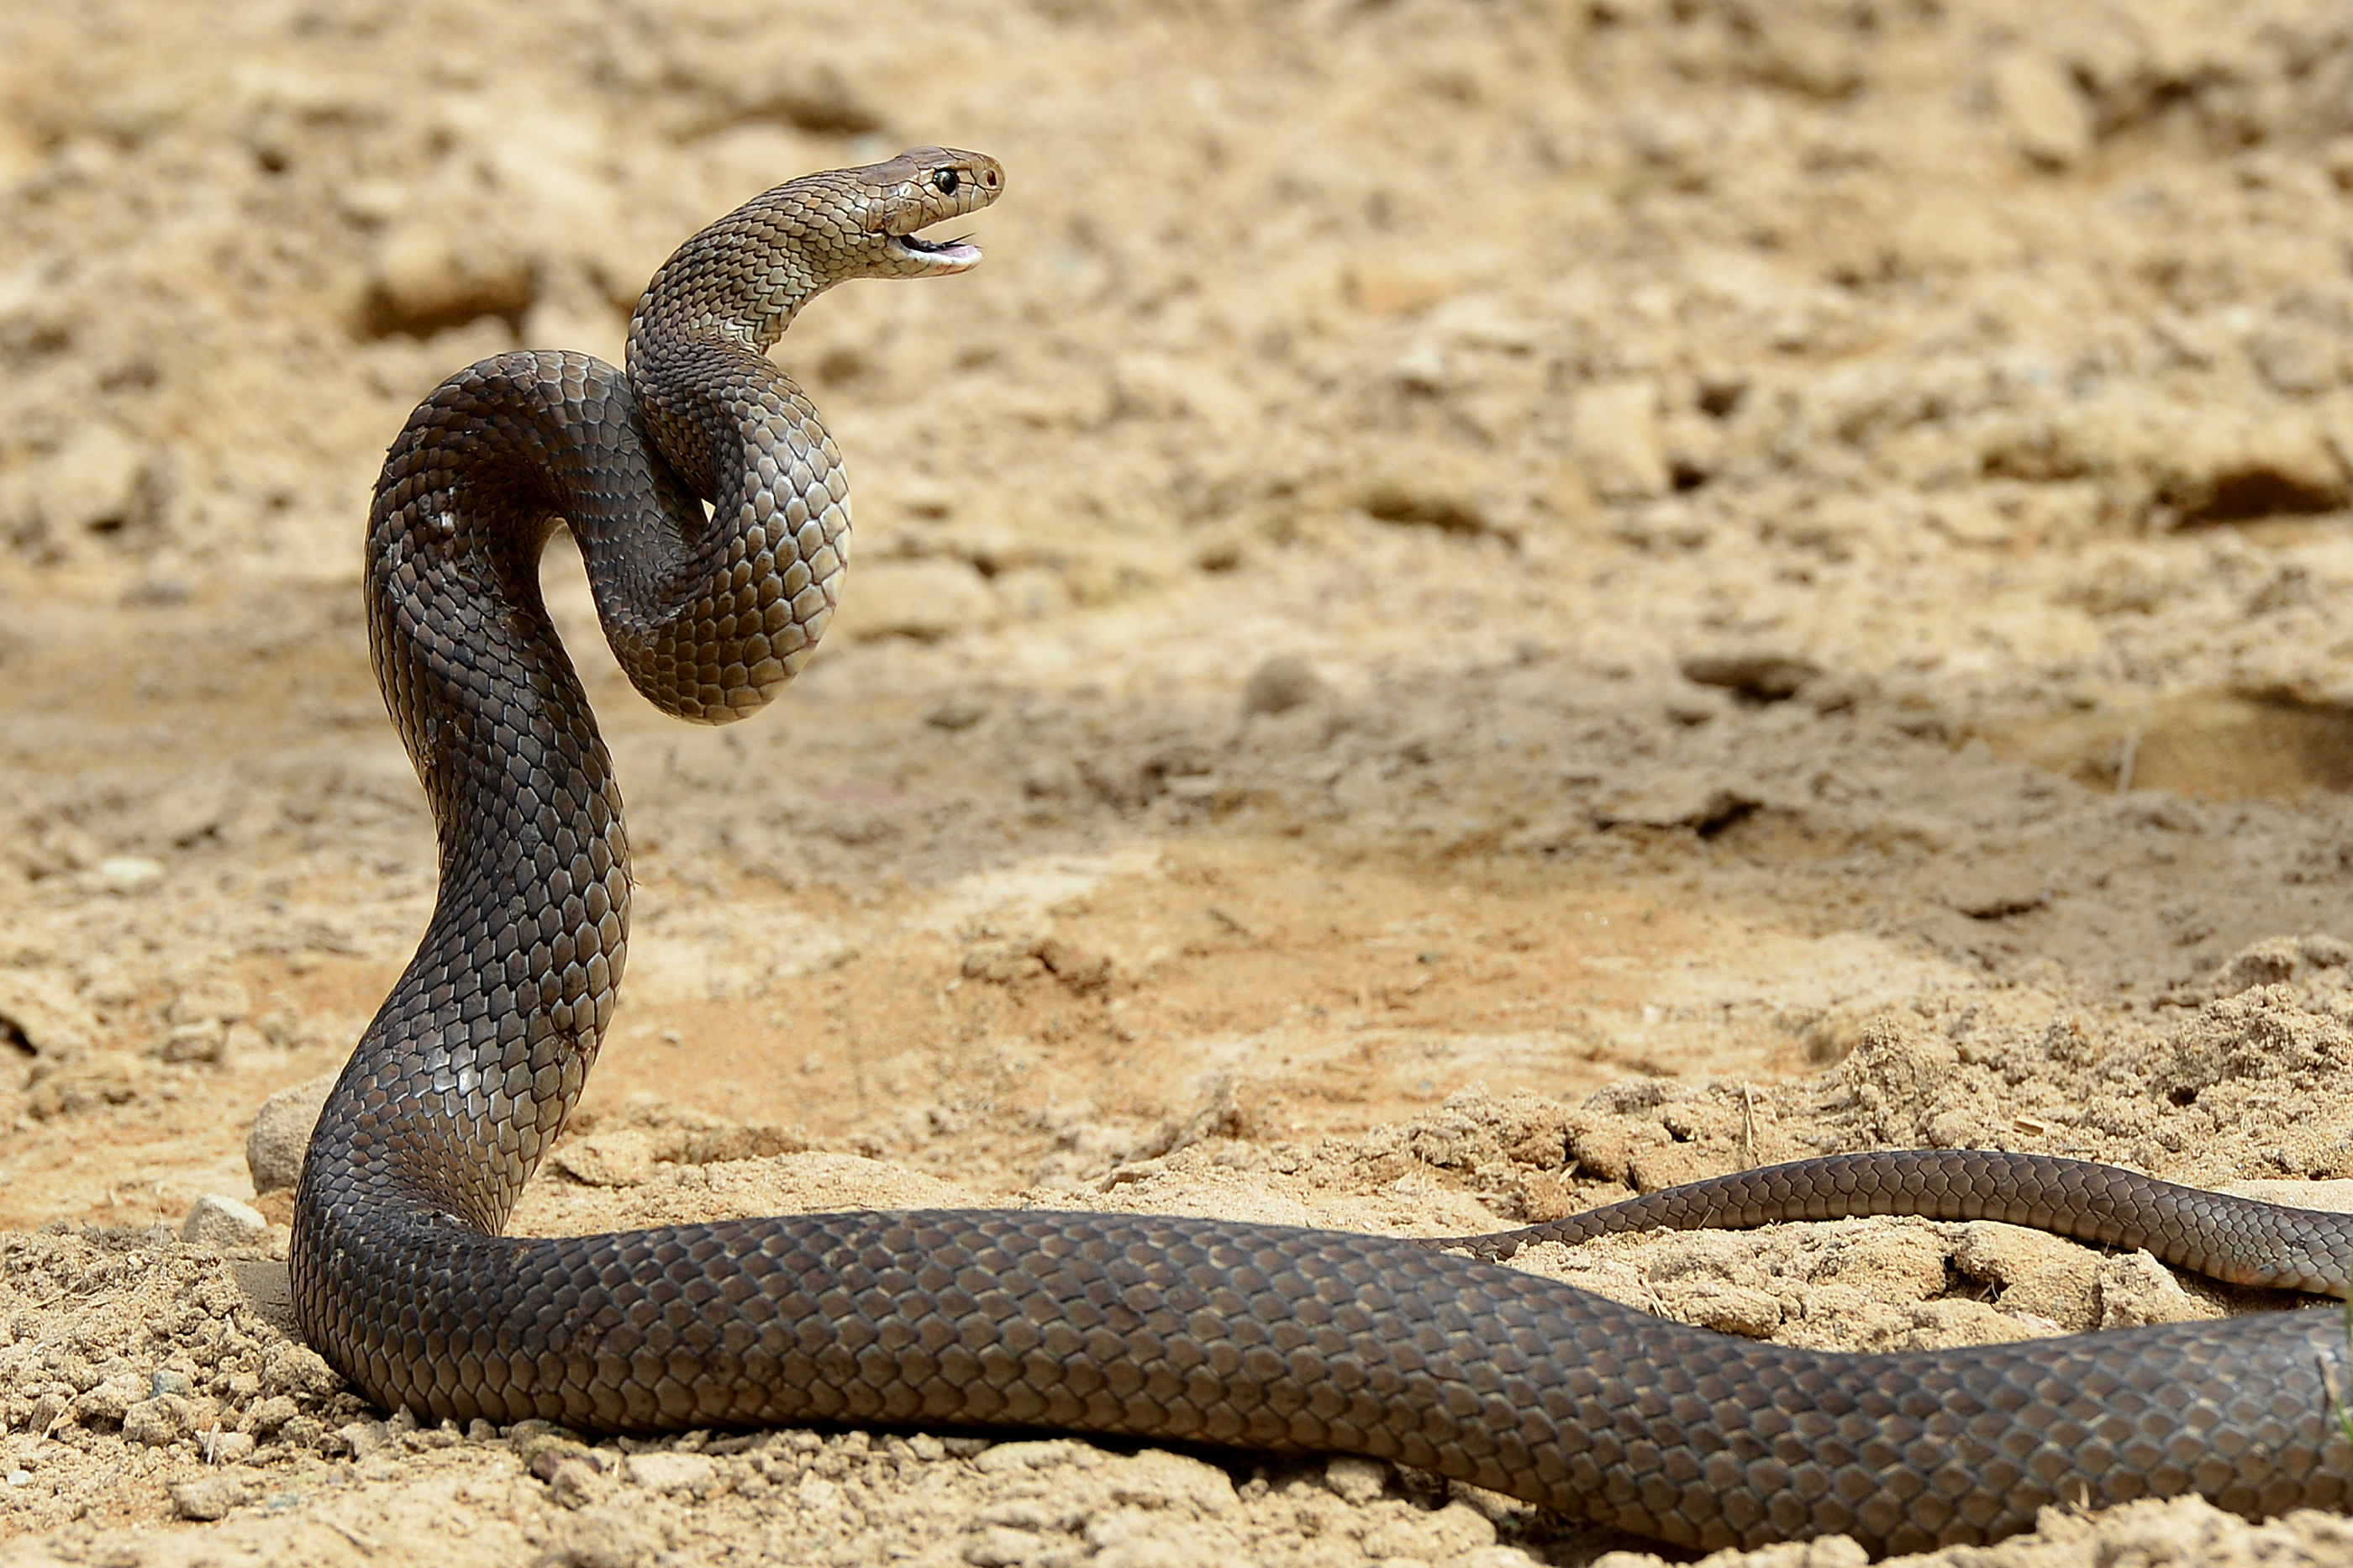 A deadly Australia eastern brown snake like this one can kill up to 20 adults. The brown rat snake found in Japan, meanwhile, was practically harmless.